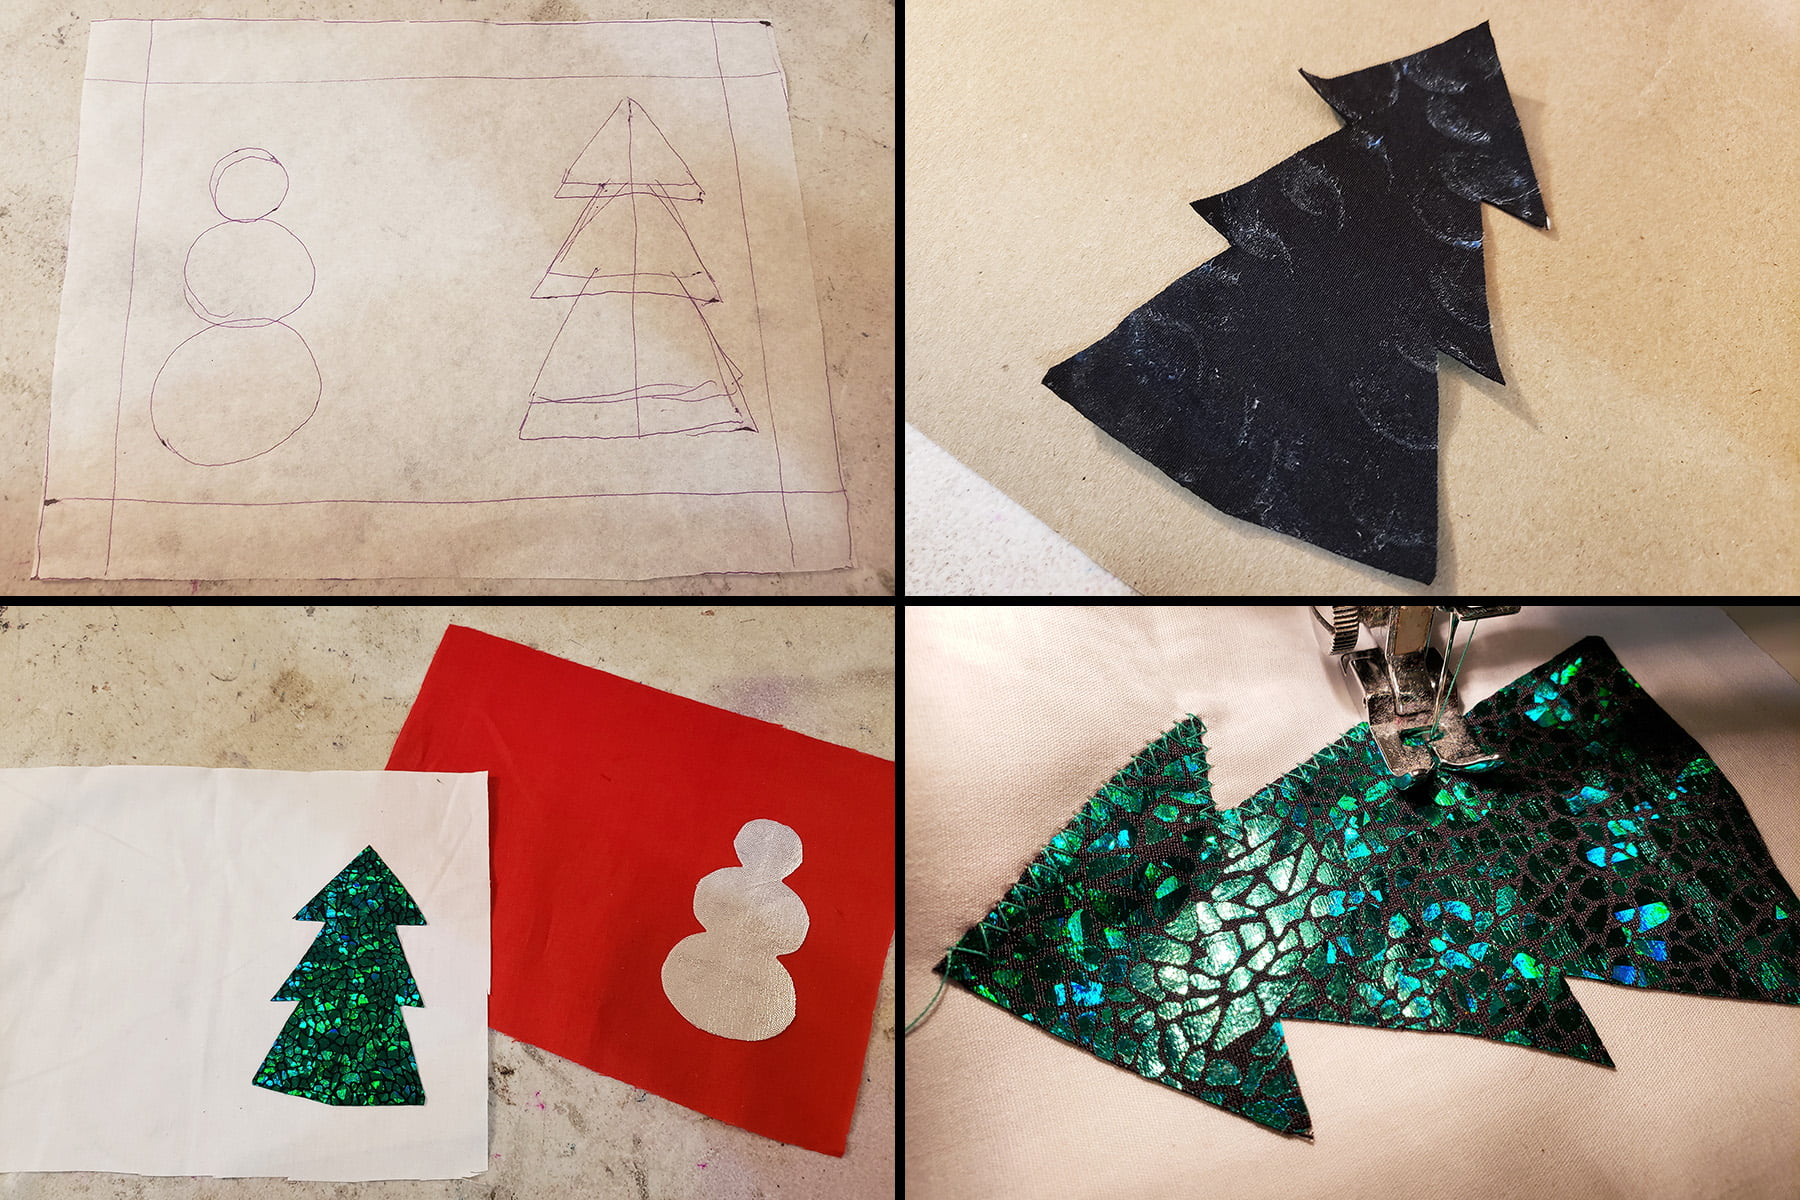 A montage photo demonstrating the applique technique described, in 4 steps.